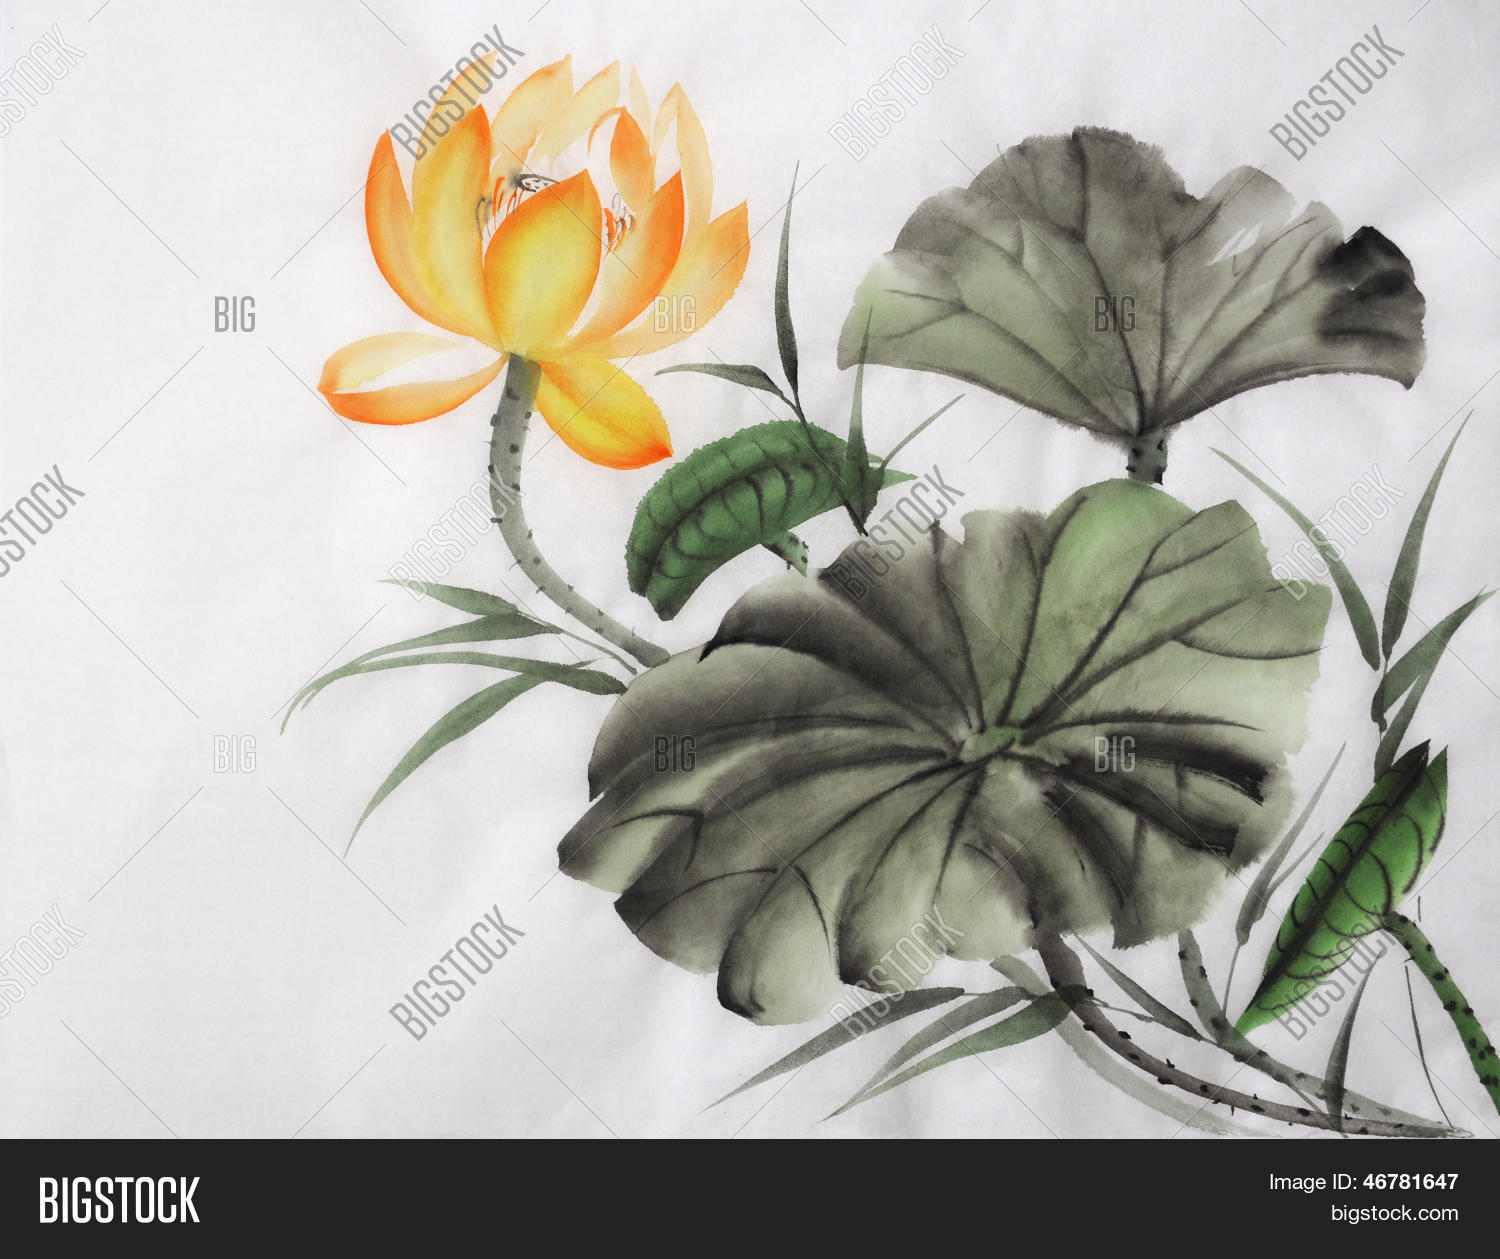 Watercolor Painting Image Photo Free Trial Bigstock